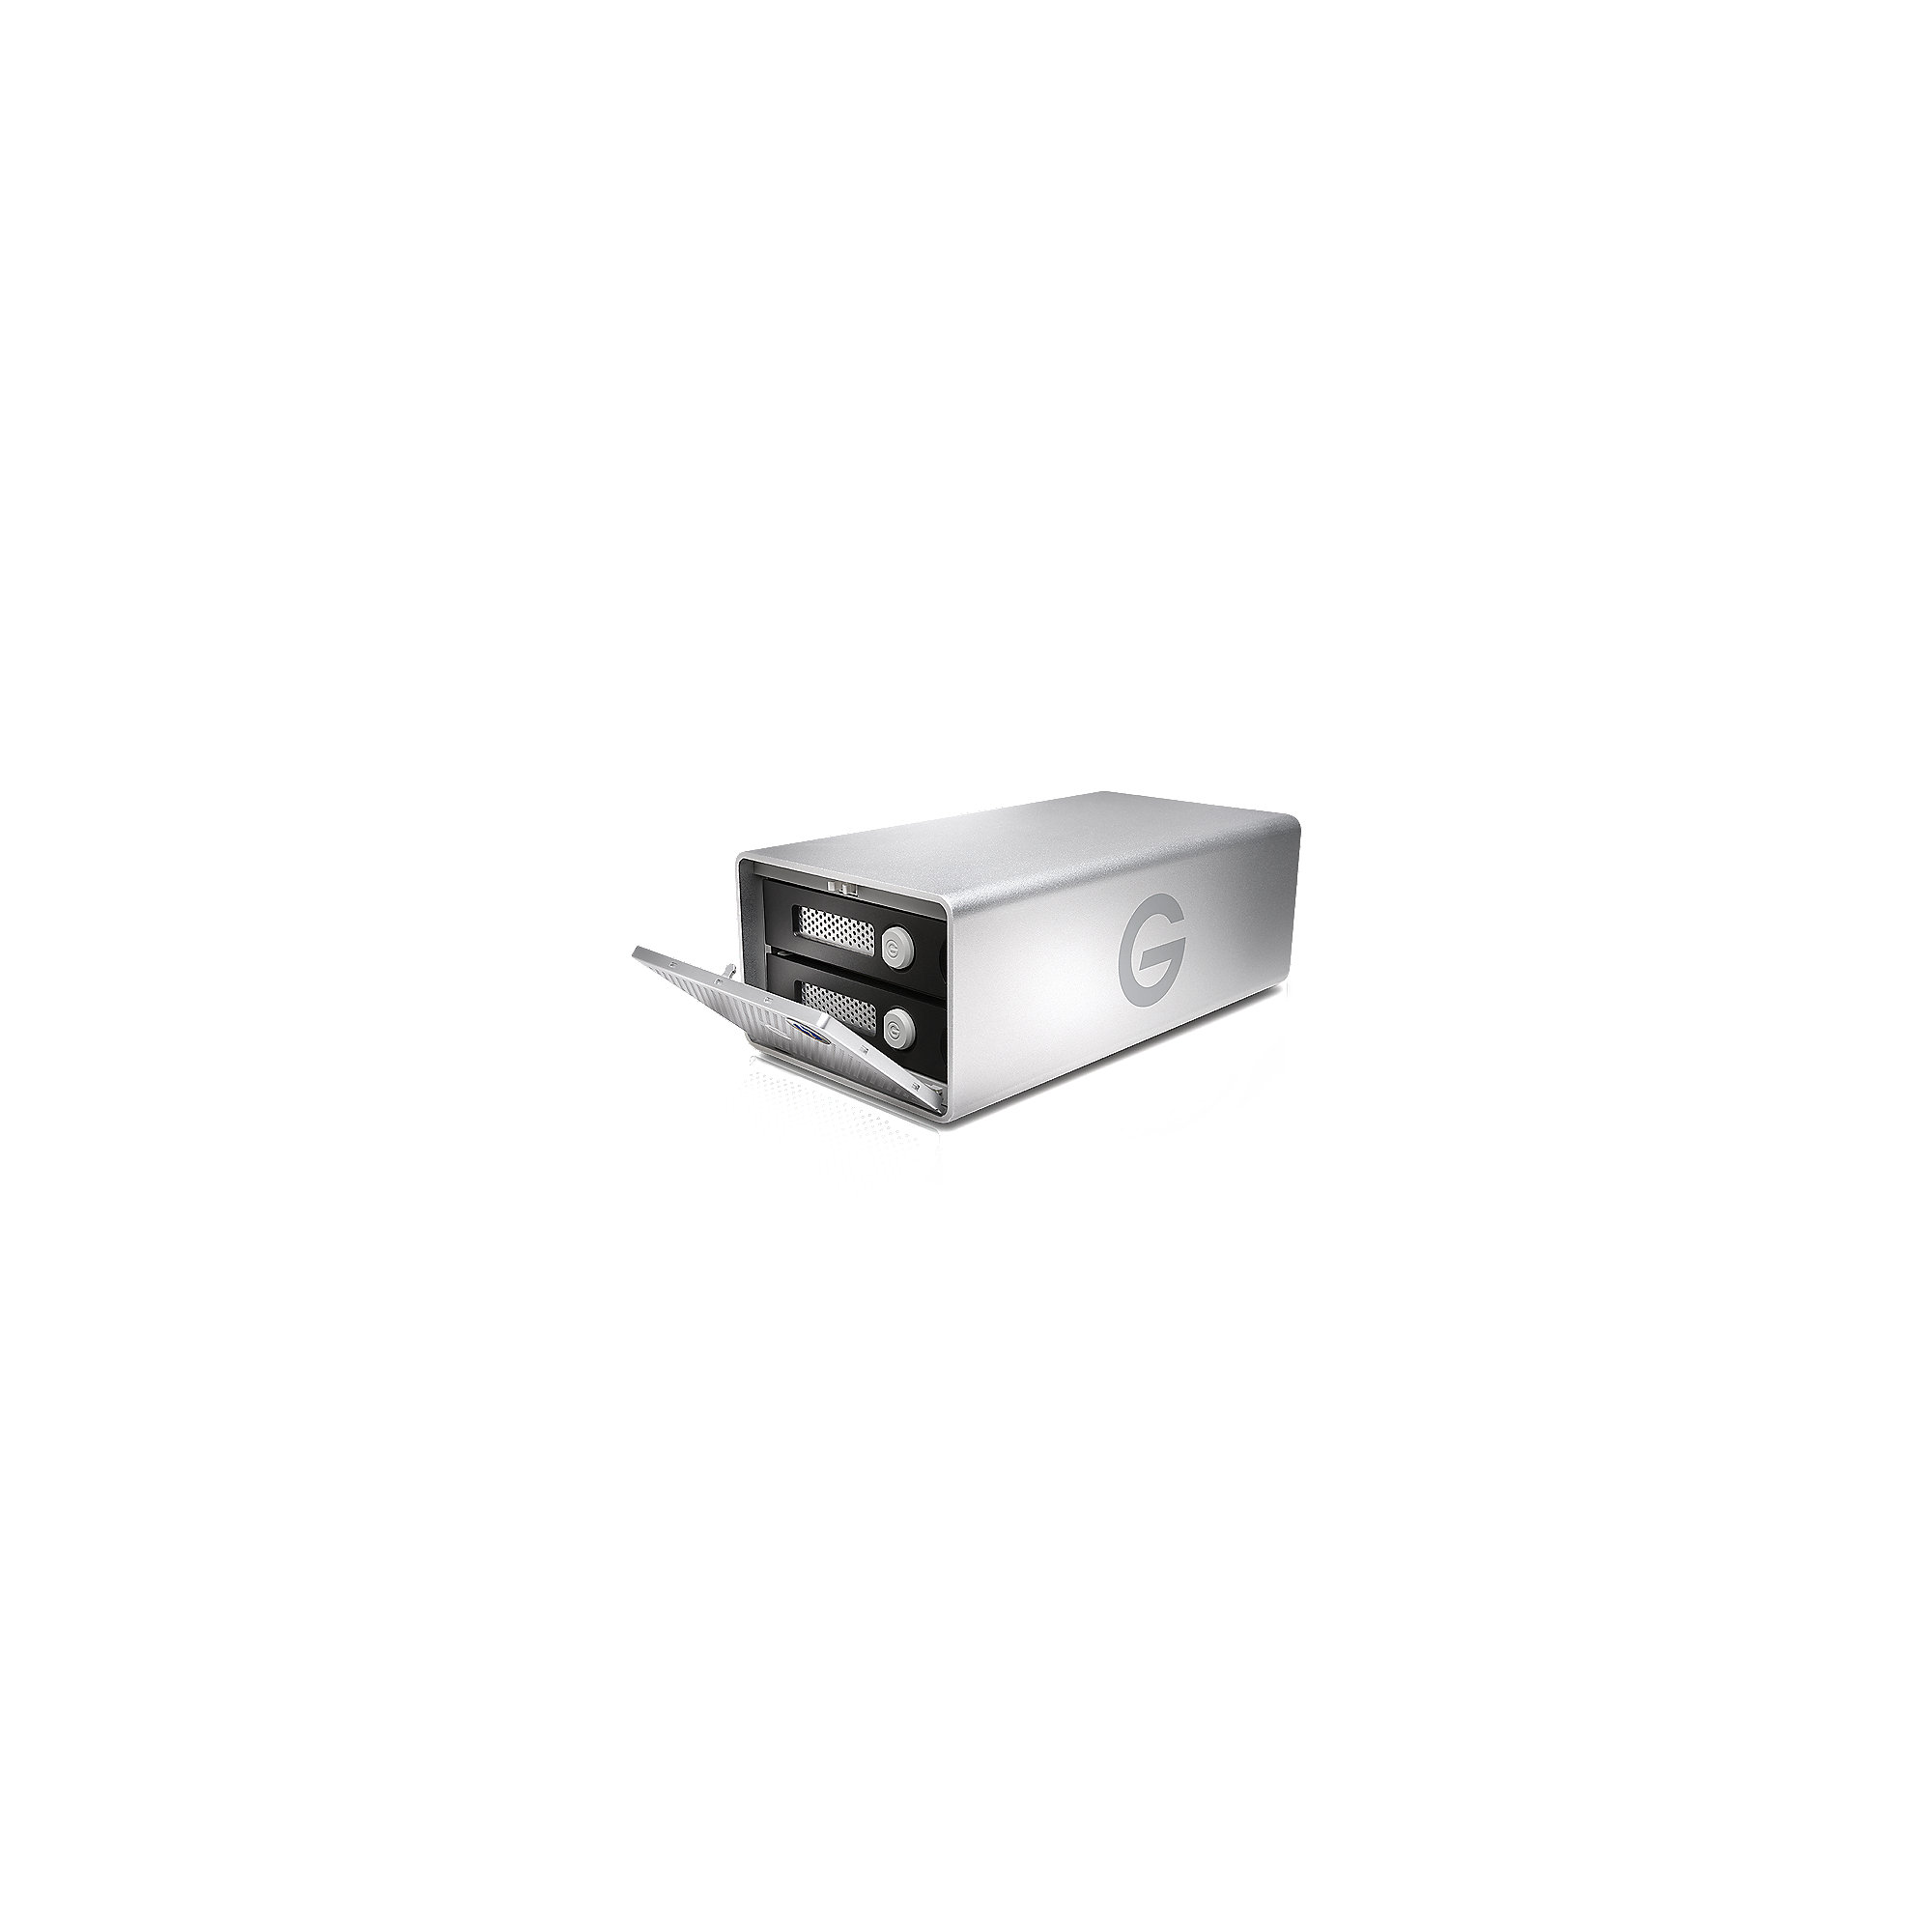 G-Technology G-RAID Thunderbolt 3 USB-C DAS 2-Bay 8TB